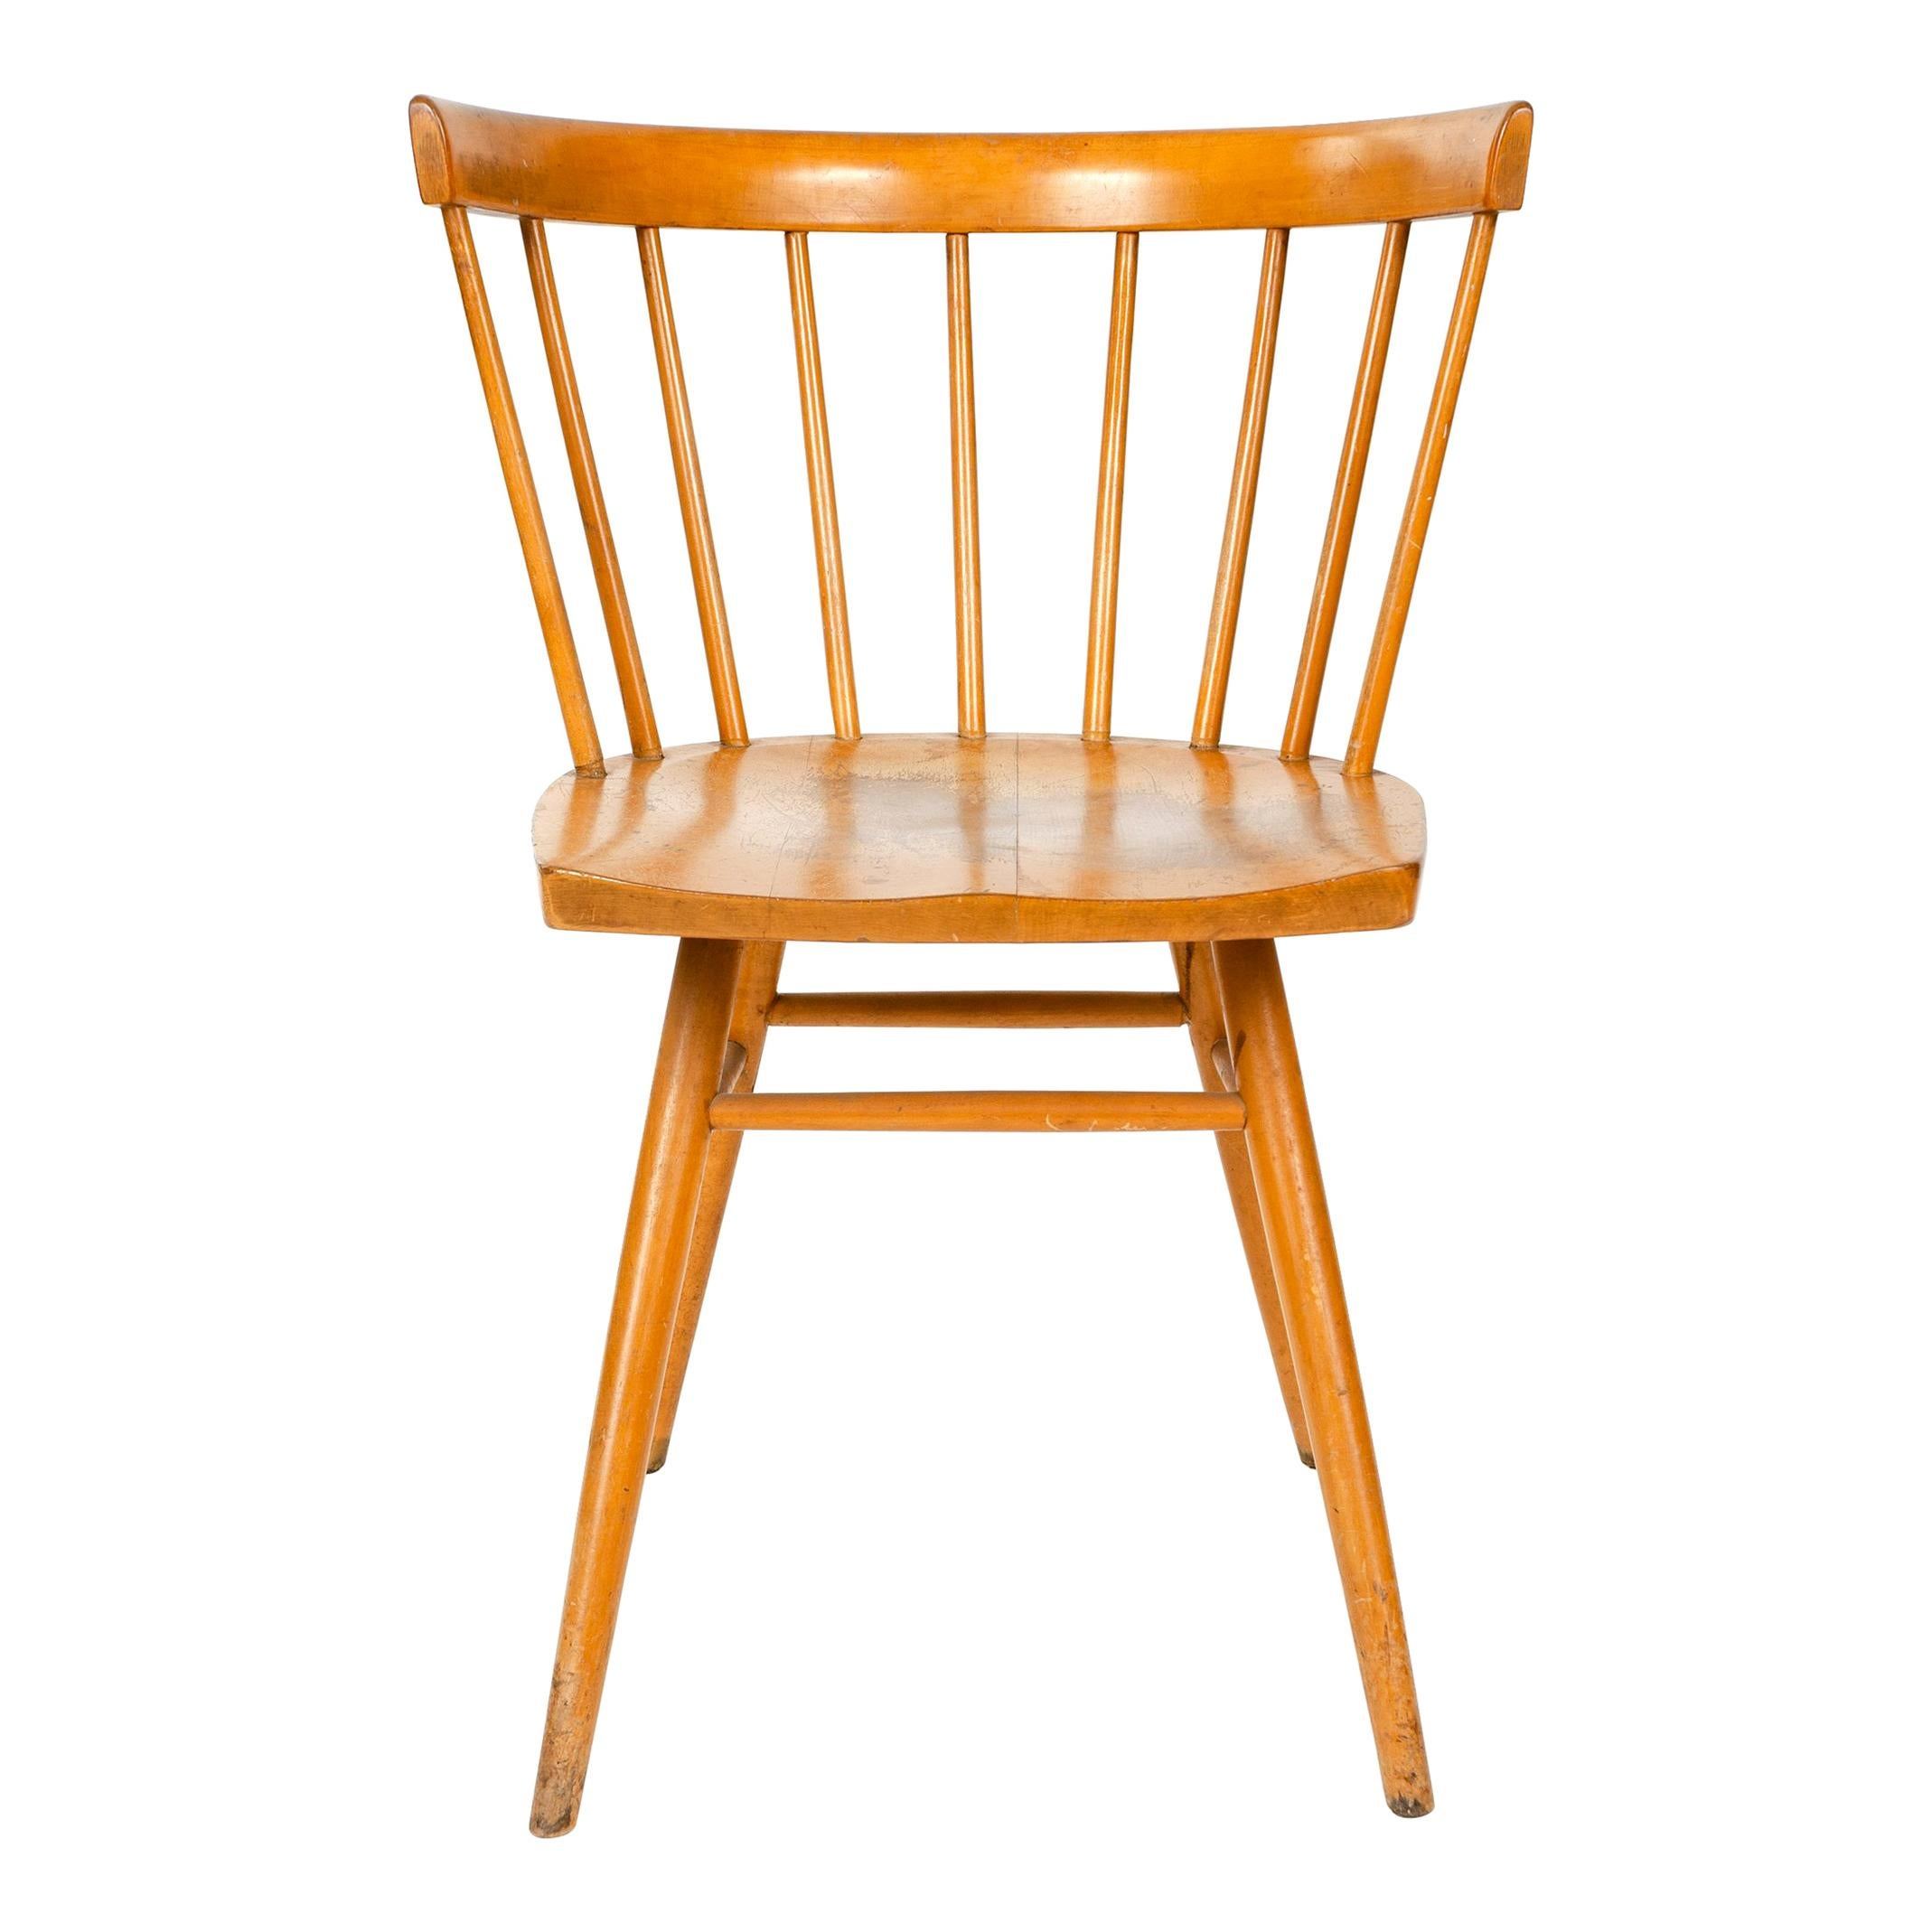 1940s Straight Chair by George Nakashima